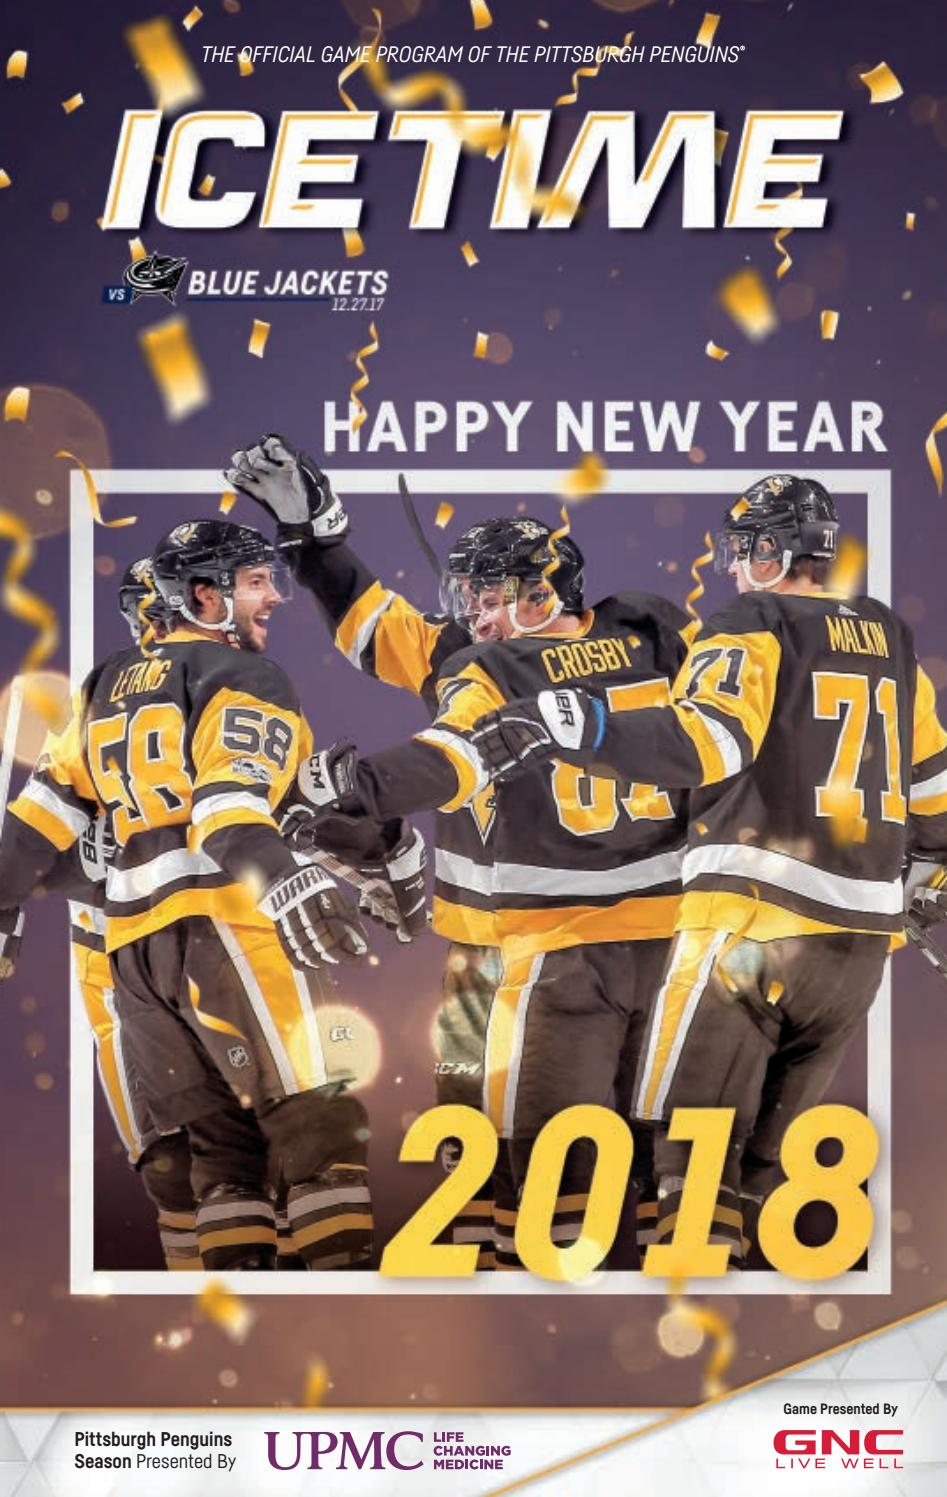 1947254ab IceTime - Game 19 vs. Columbus Blue Jackets 12.27.17 by Pittsburgh Penguins  - issuu